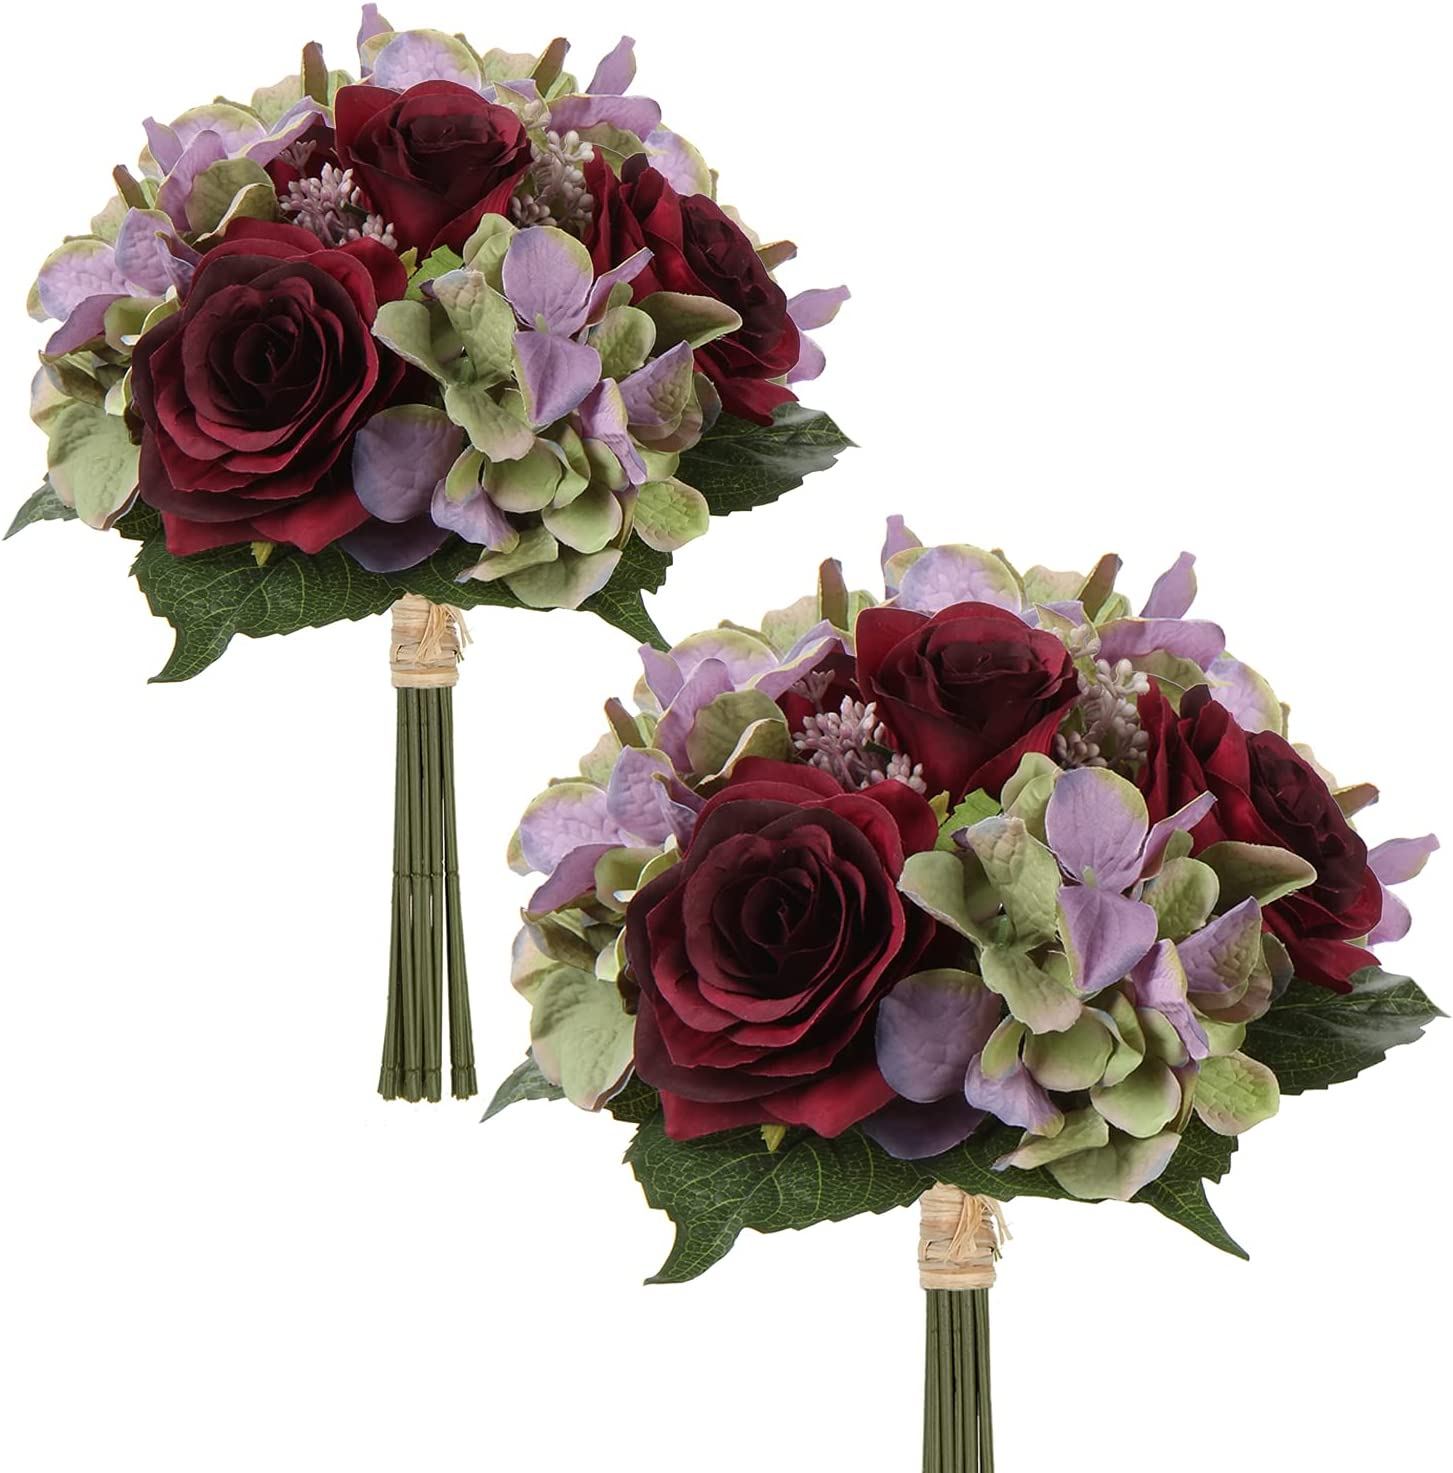 Artificial Limited time cheap sale Flower Bouquet Rose Hydrangea Flowers Stems Faux Long-awaited with